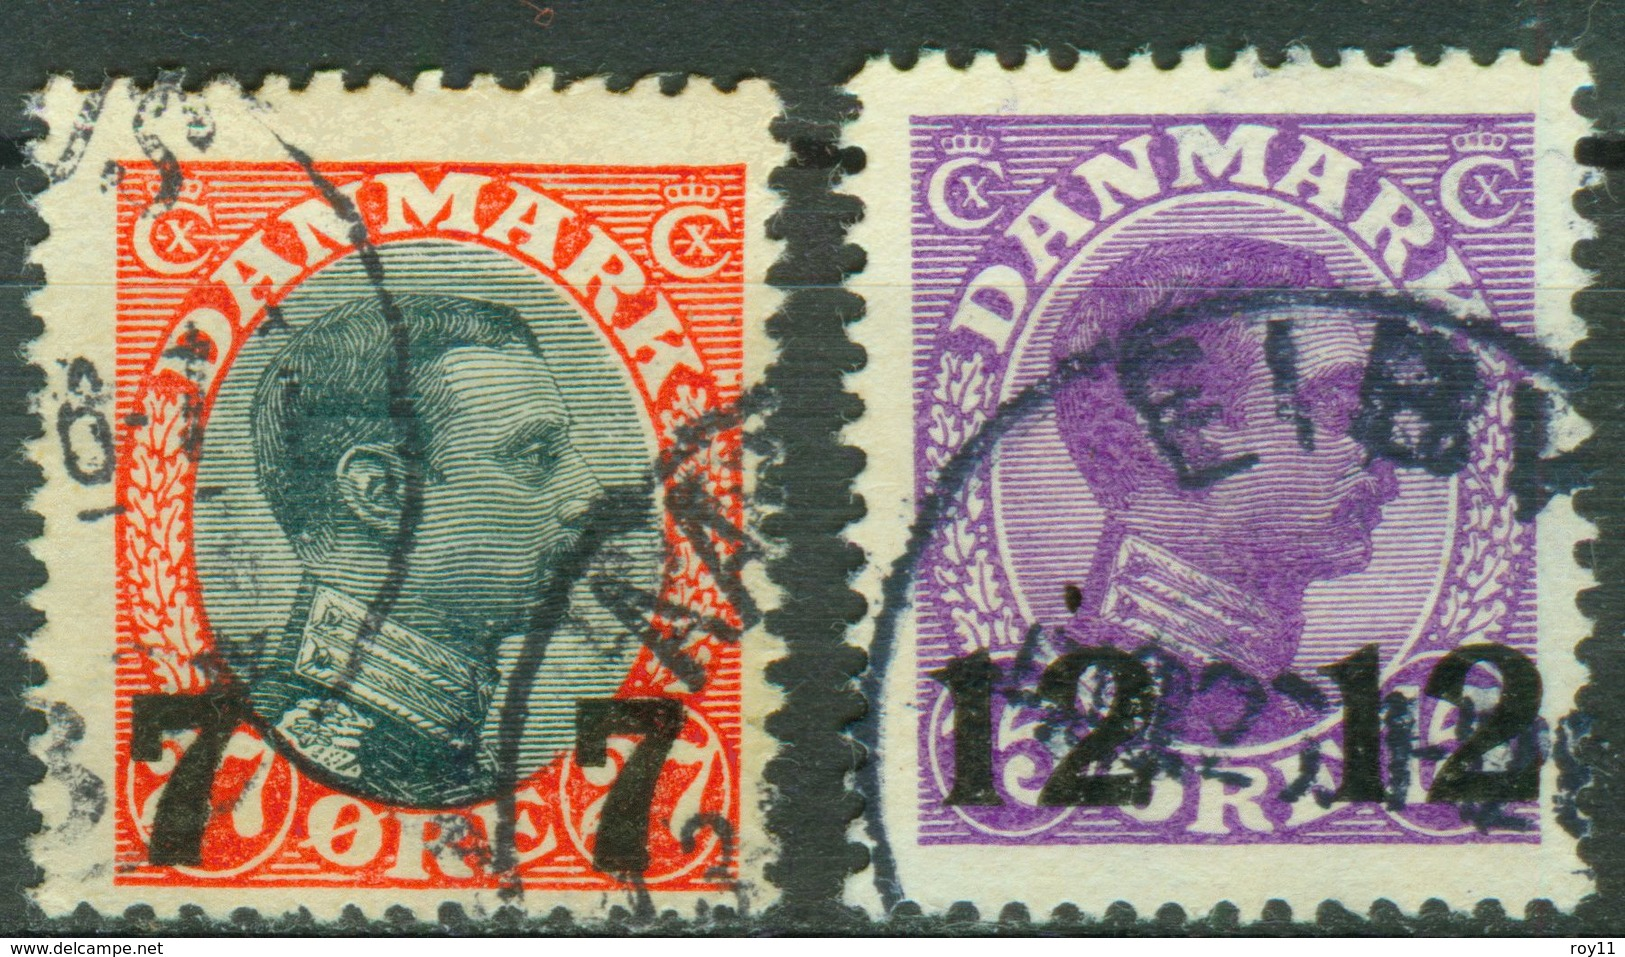 Nr. 157 -158 - Michel 15 € - Used Stamps